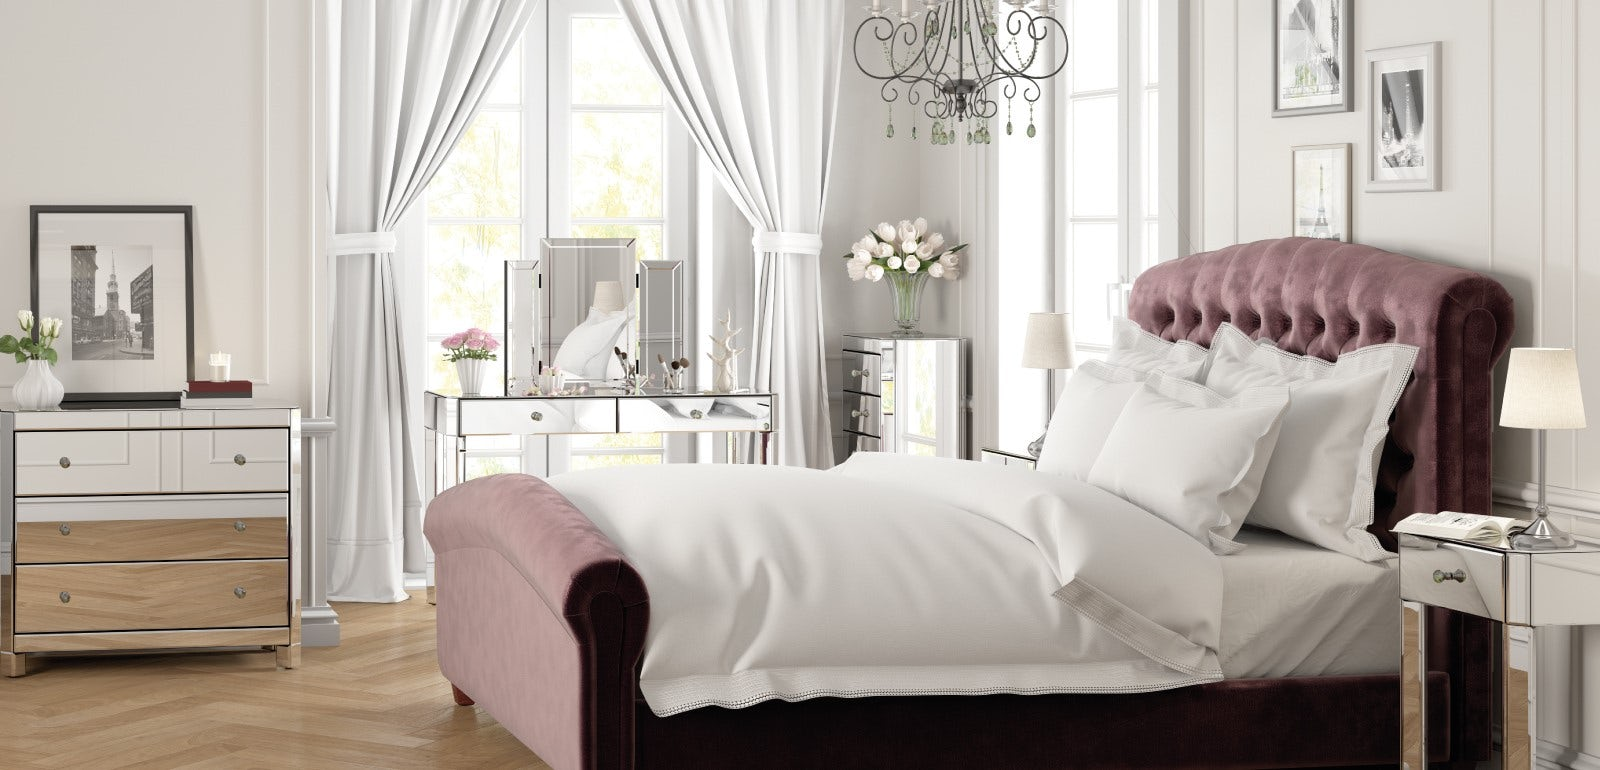 Give your bedroom the feminine touch